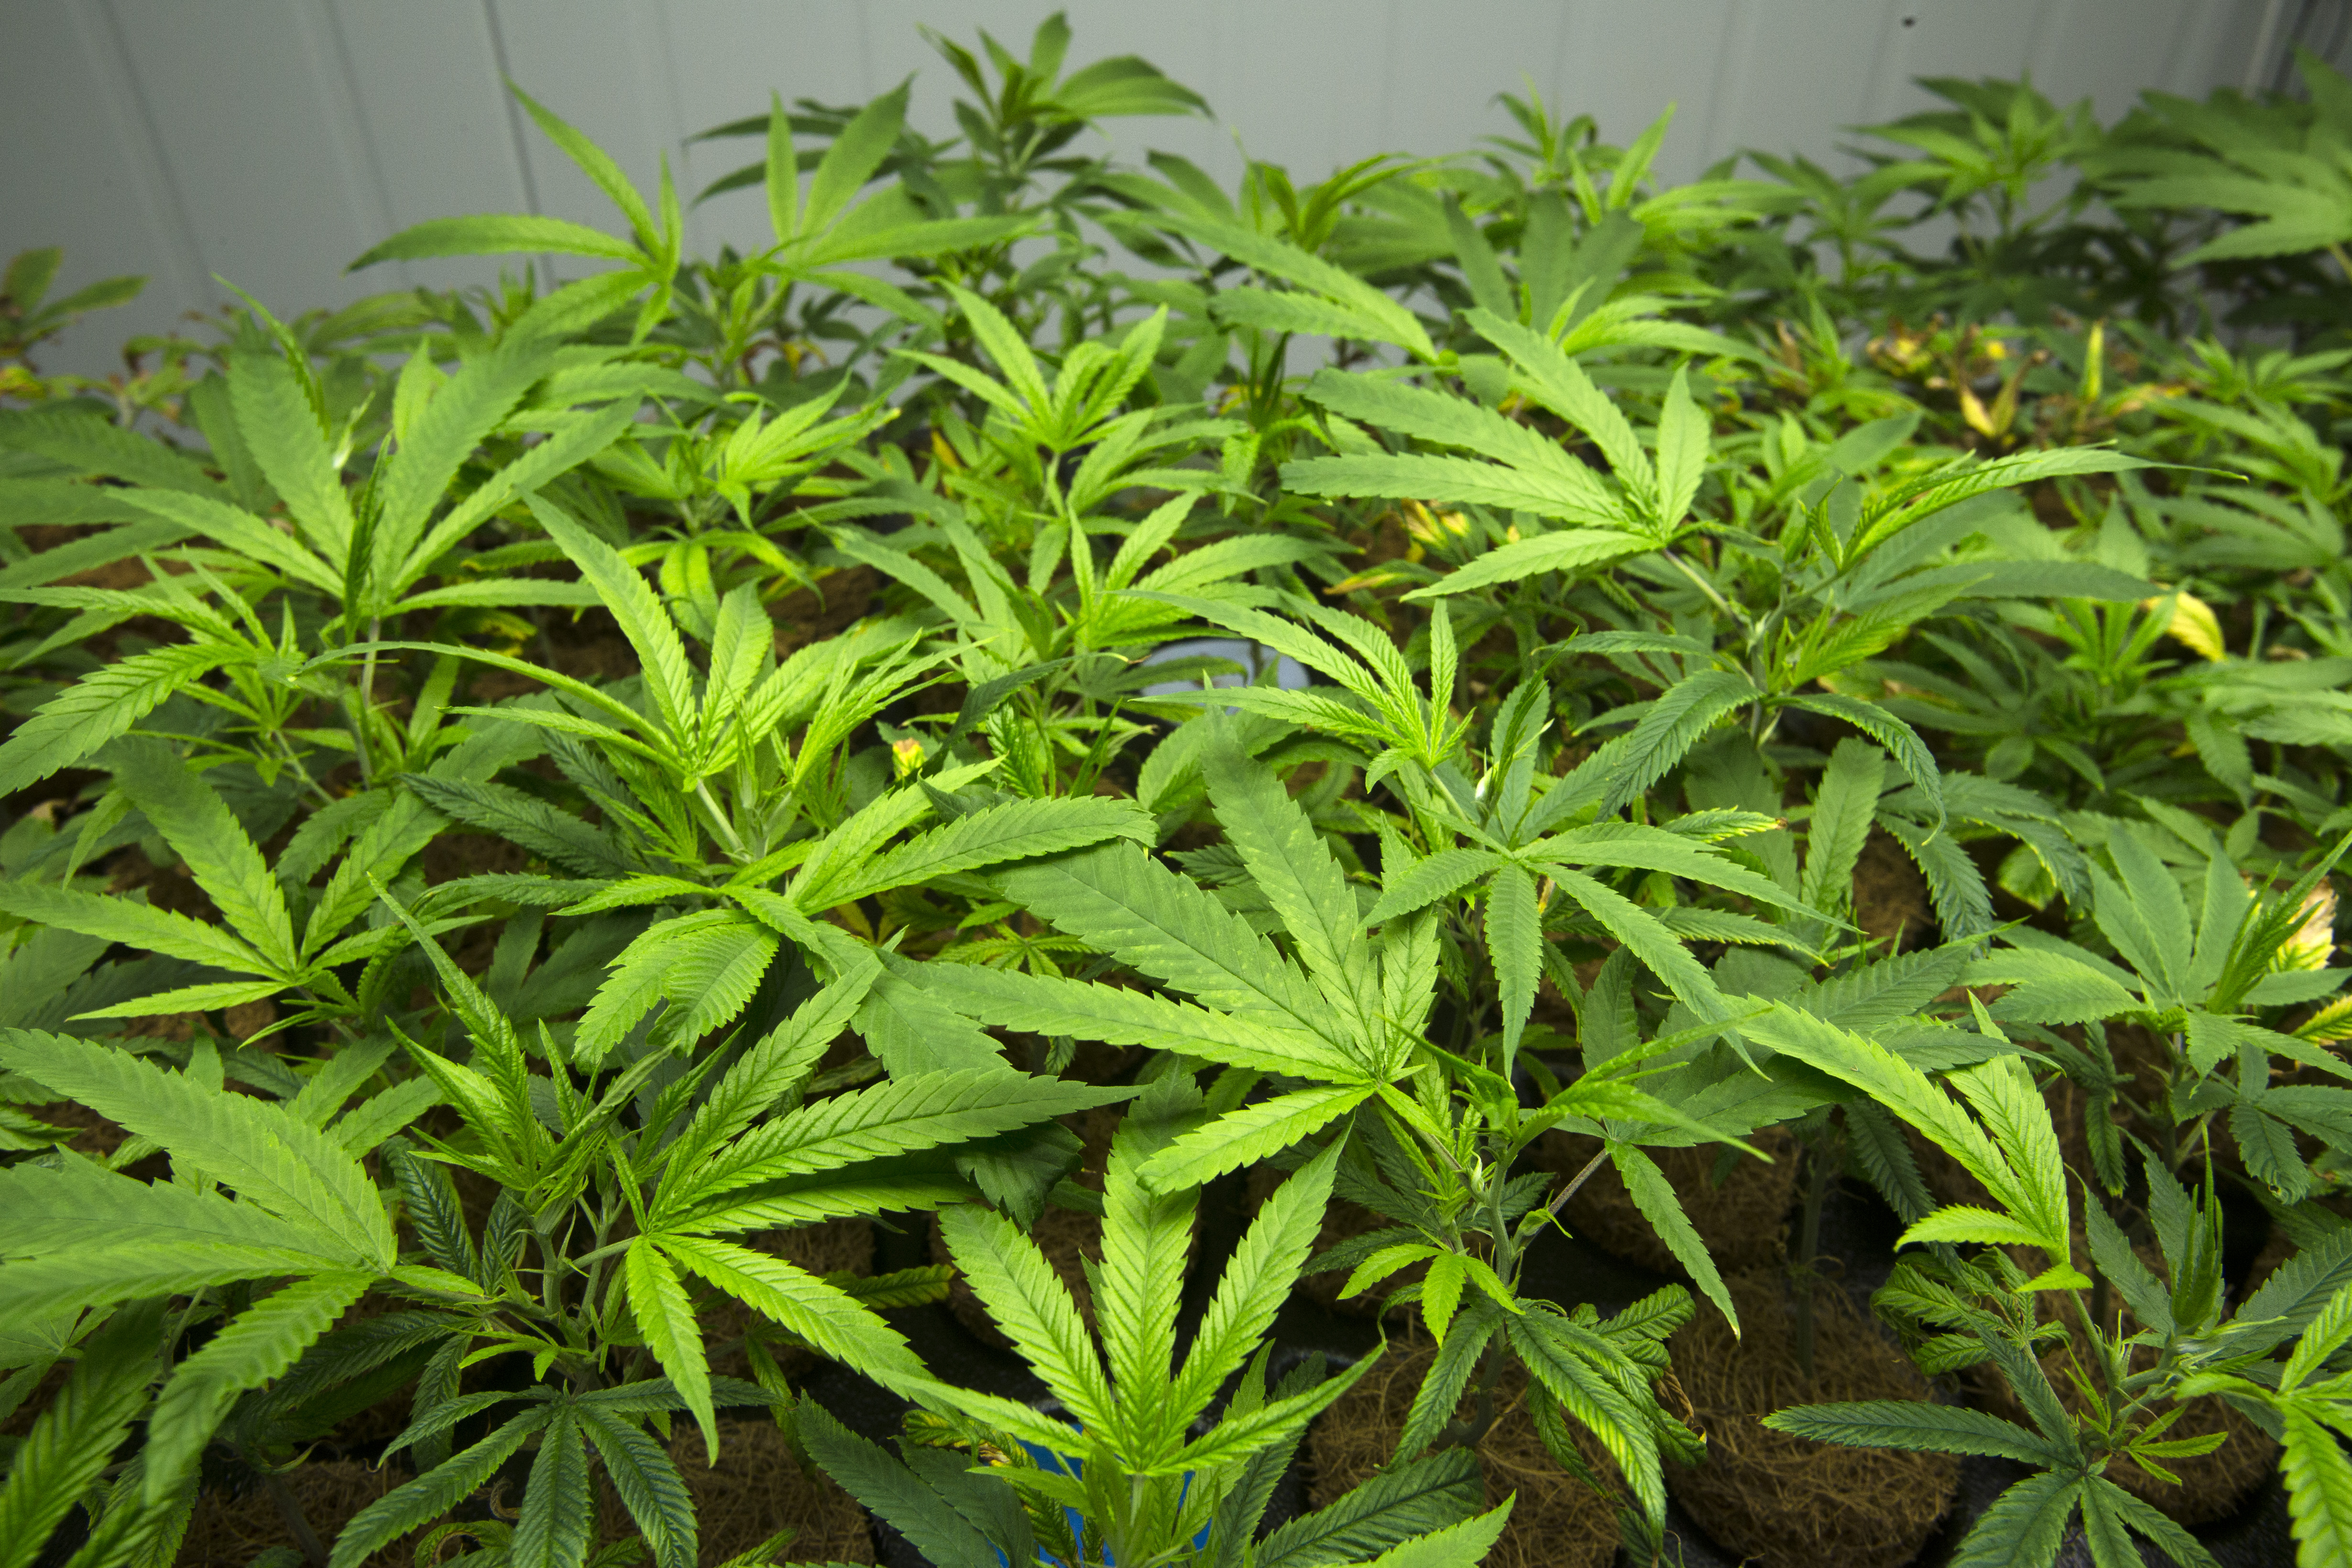 N.J. weed vote still likely by year-end, sources say. But there are 2 options on the question.